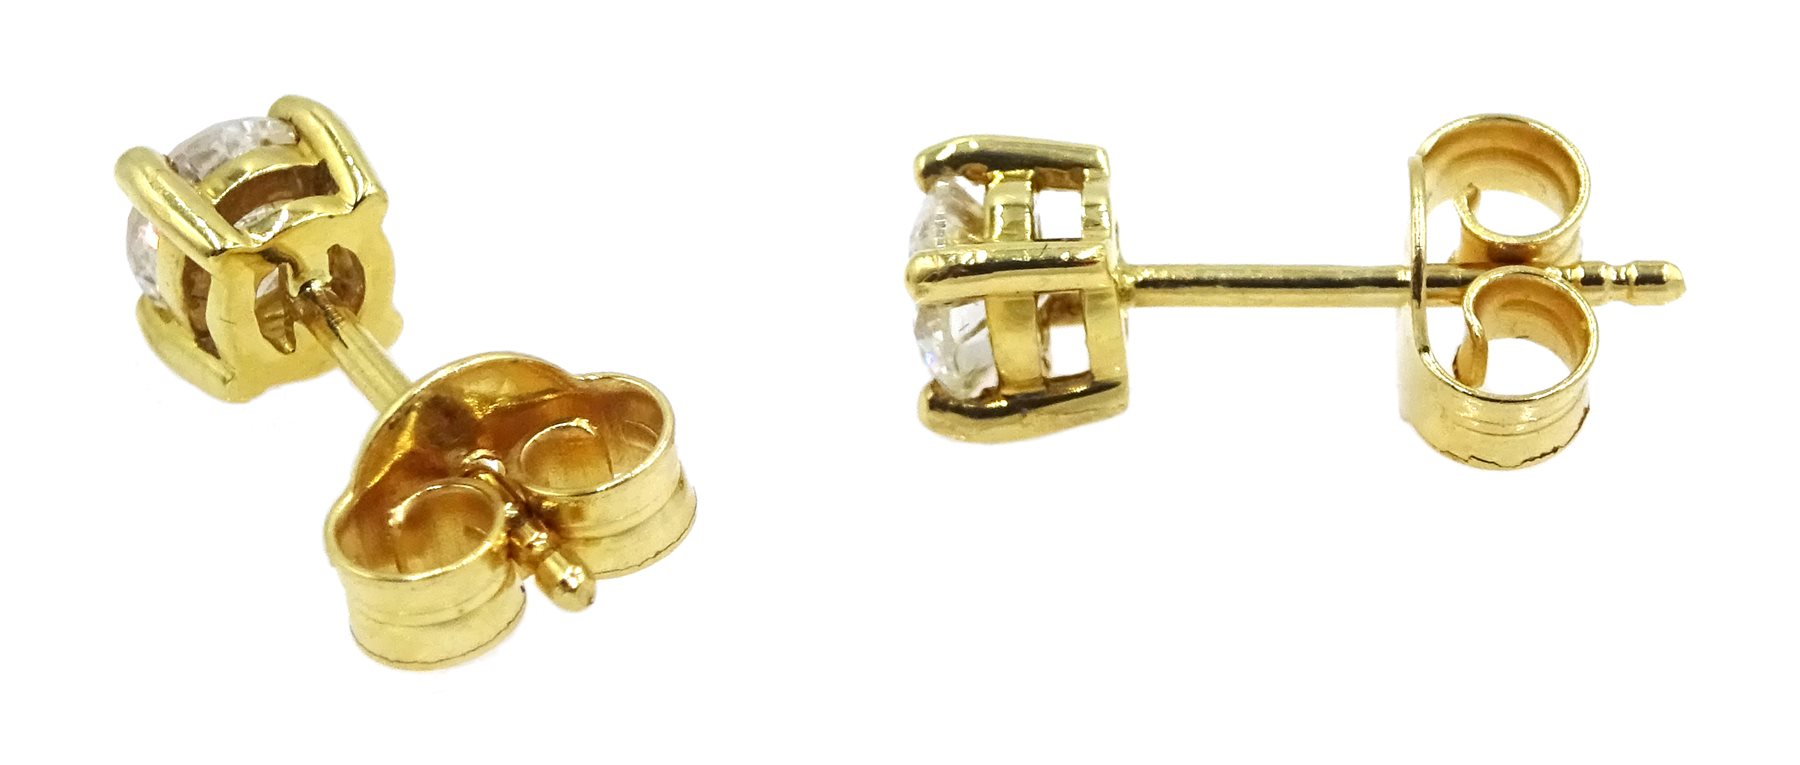 Pair of 18ct gold diamond stud earrings, stamped 750, total diamond weight 0.64 carat - Image 2 of 2